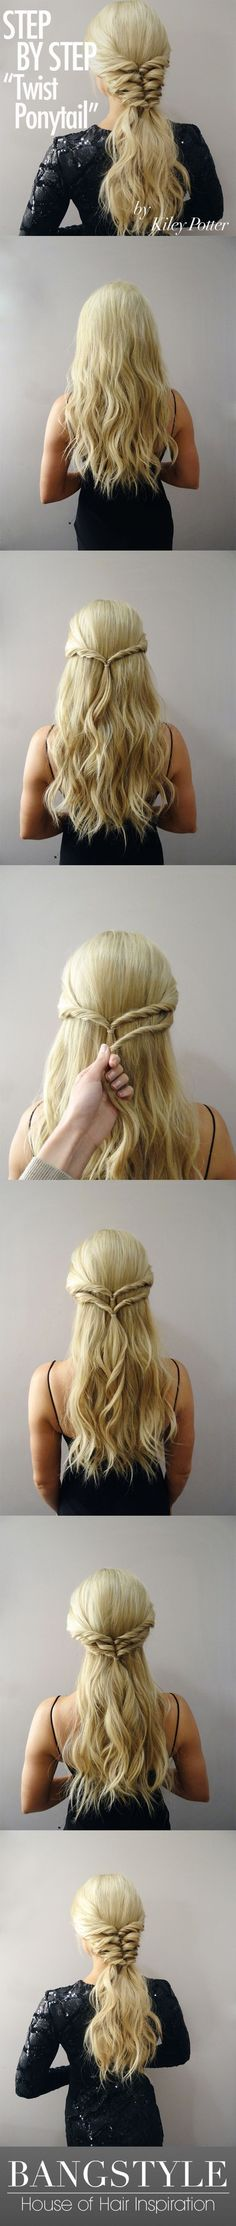 20 Simple and Easy Hairstyle Tutorials For Your Daily Look! - Page 2 of 3…